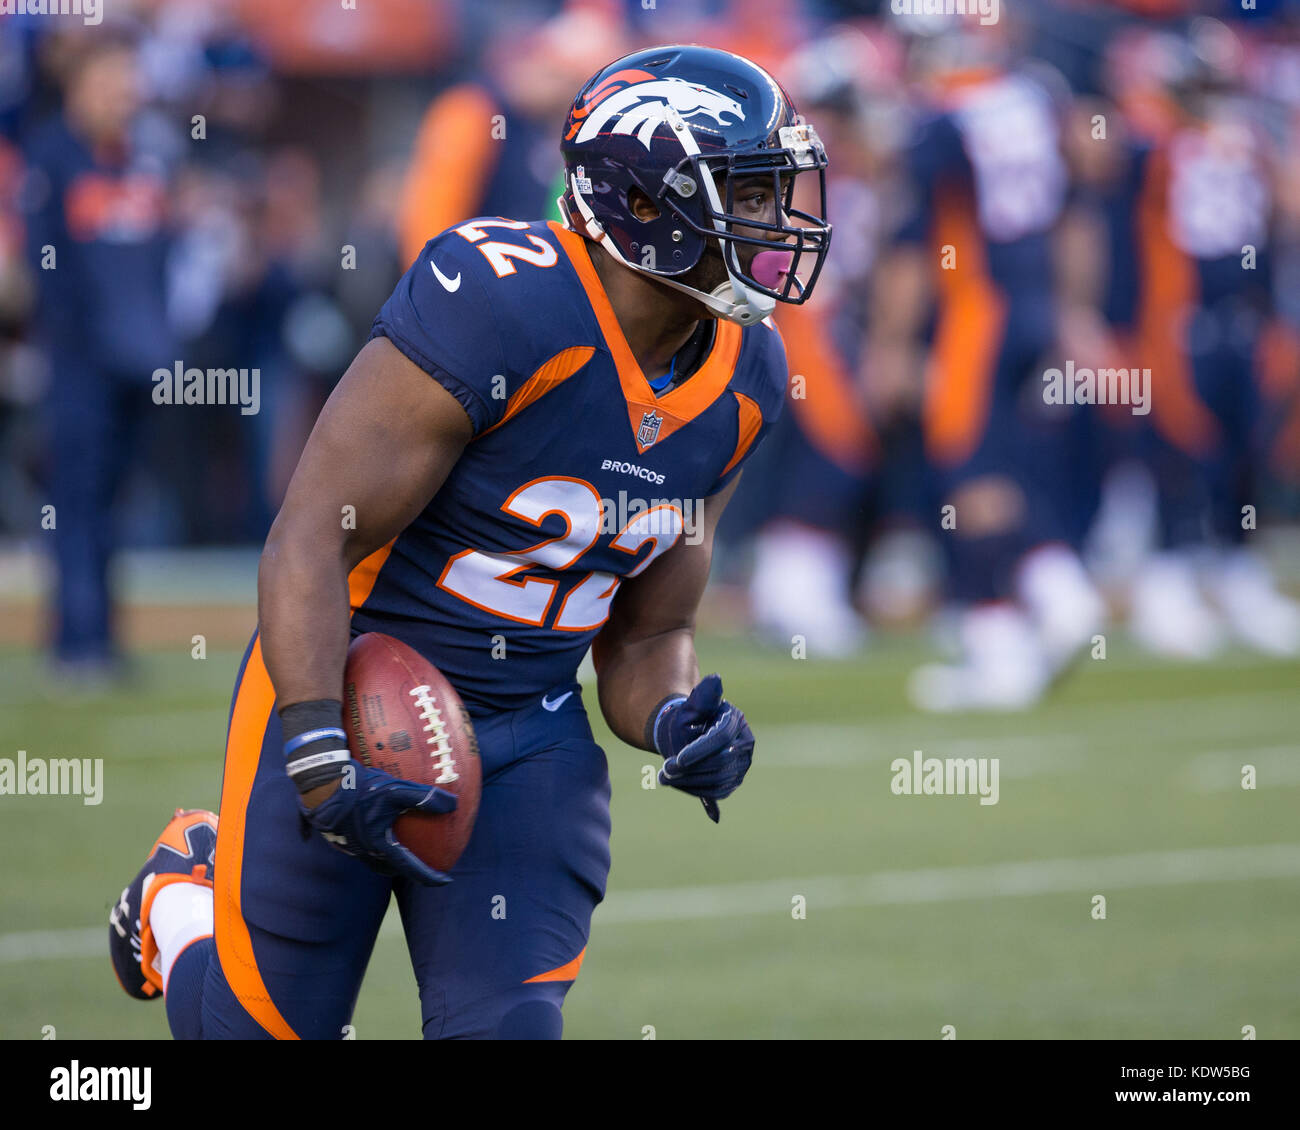 Vistoso Colorear Denver Broncos Motivo - Ideas Creativas para ...